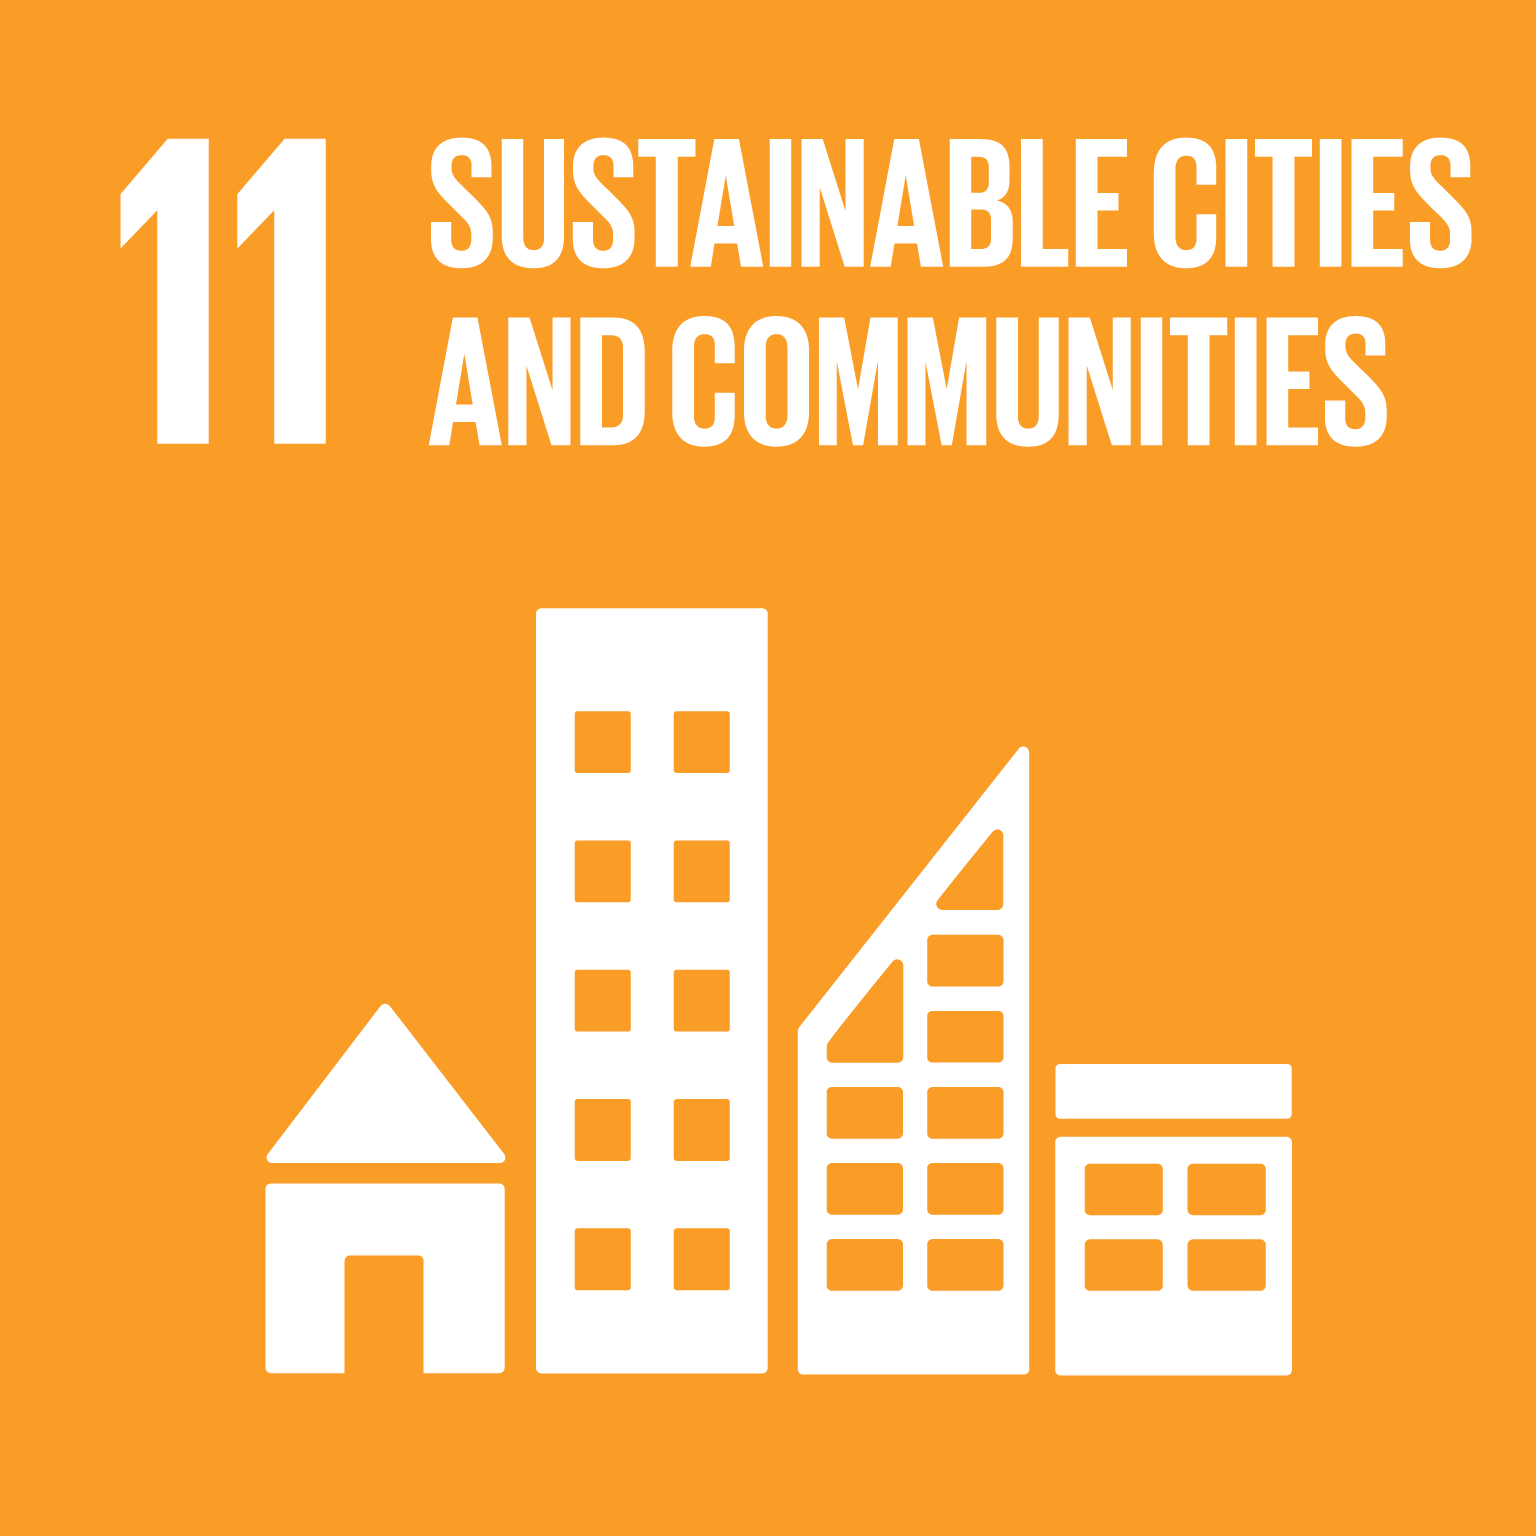 Sustainable cities and communities logo.